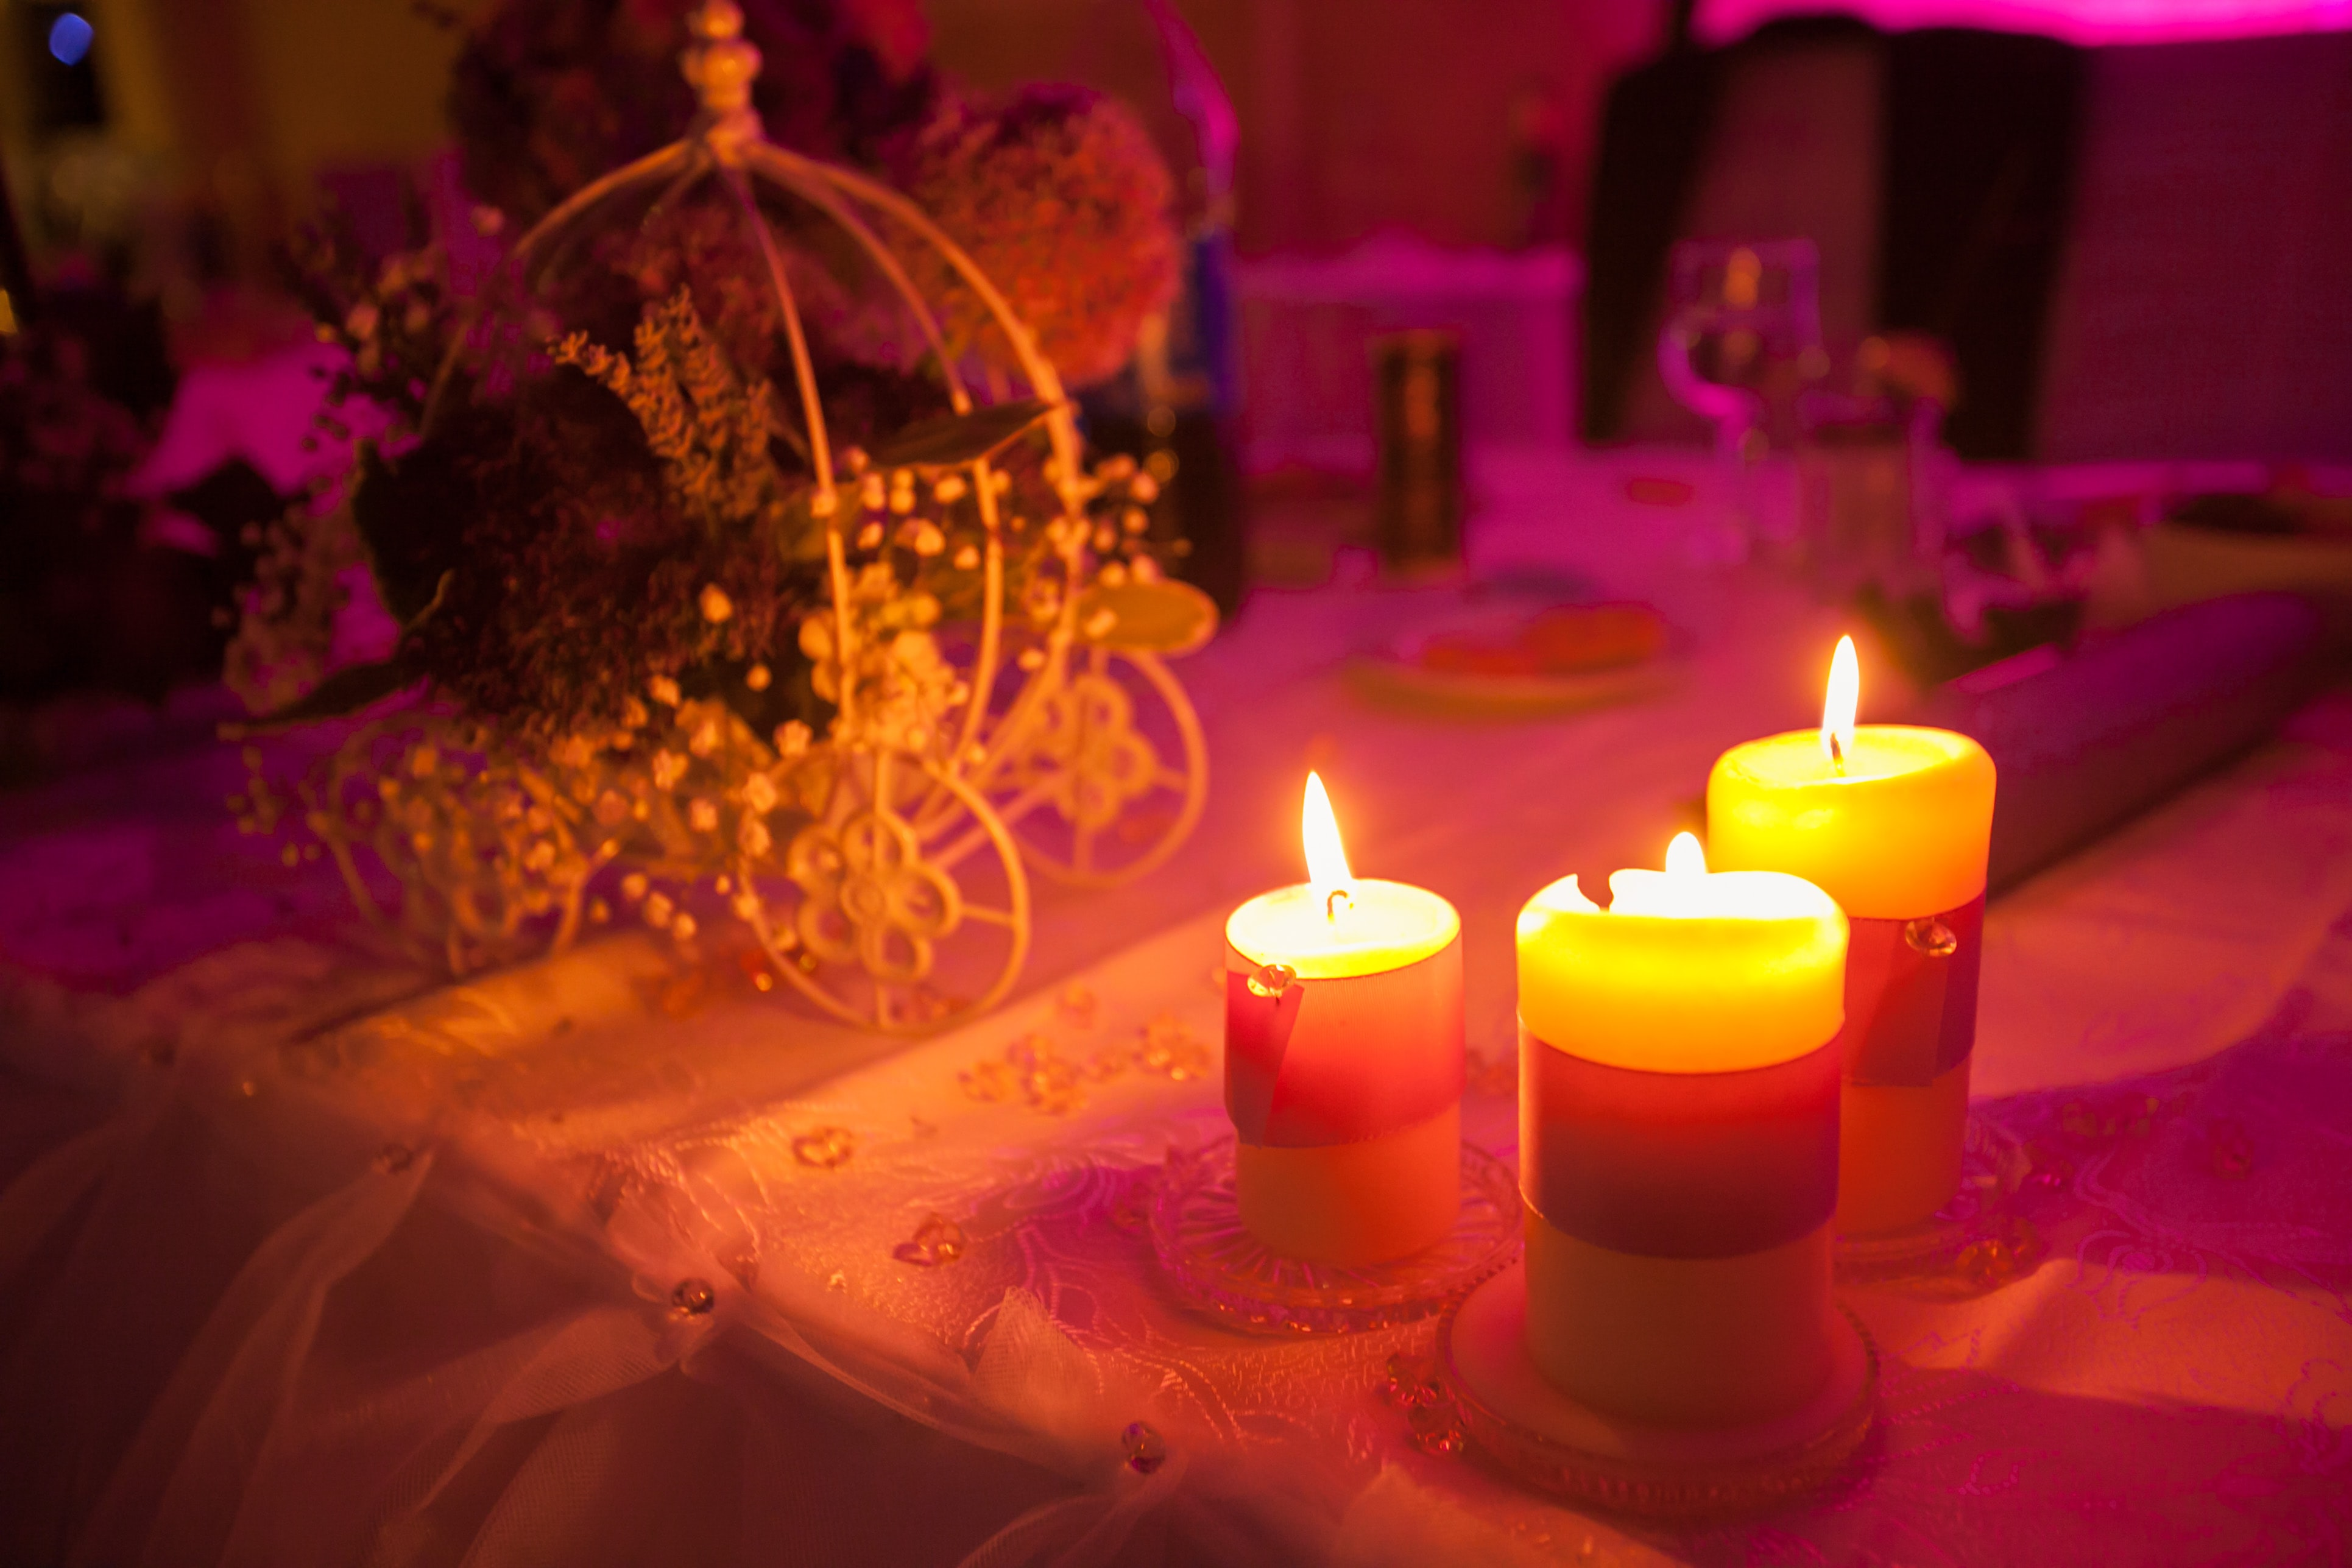 Three lit candles on a table at a princess themed party.